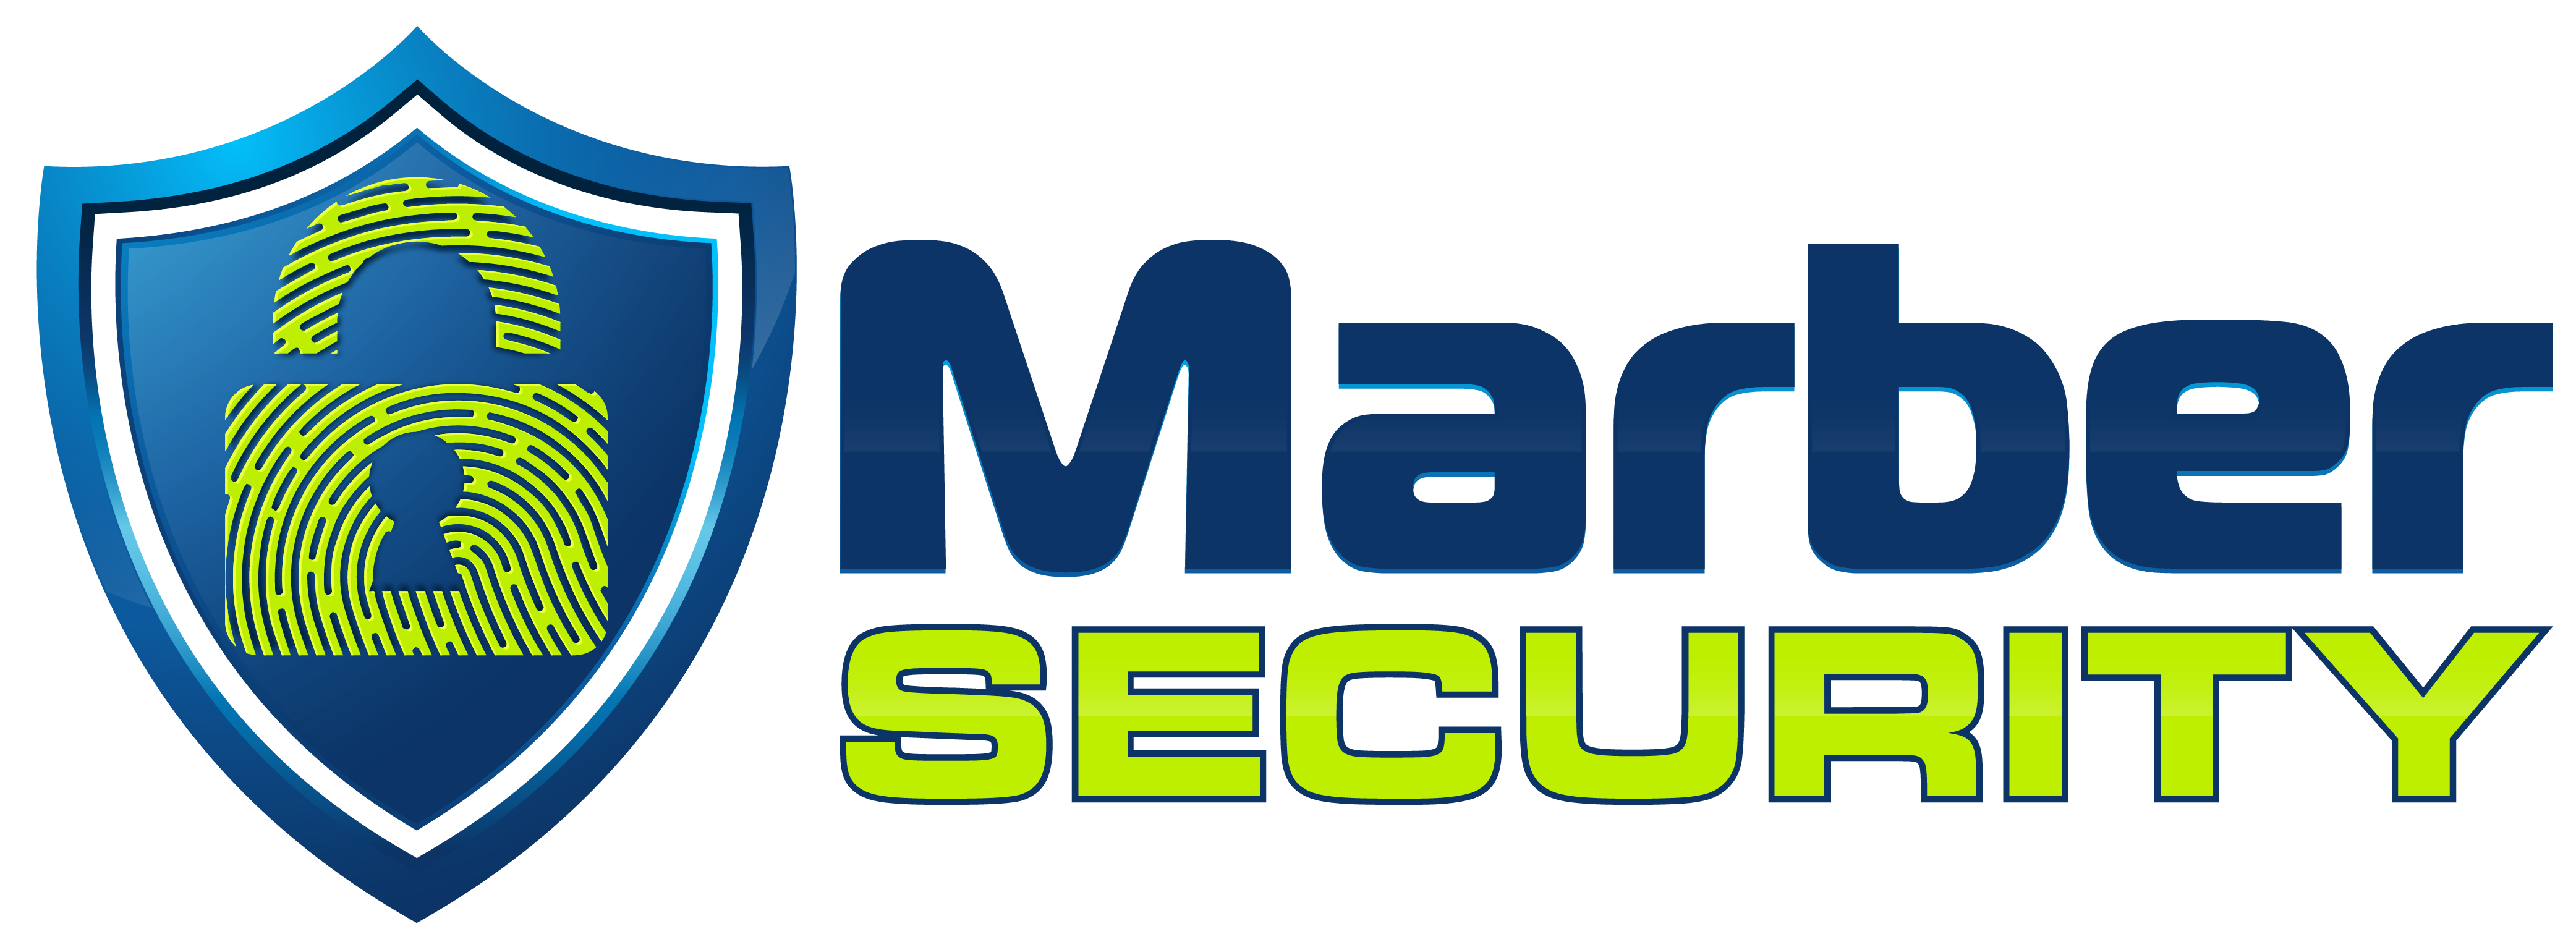 Marber Security